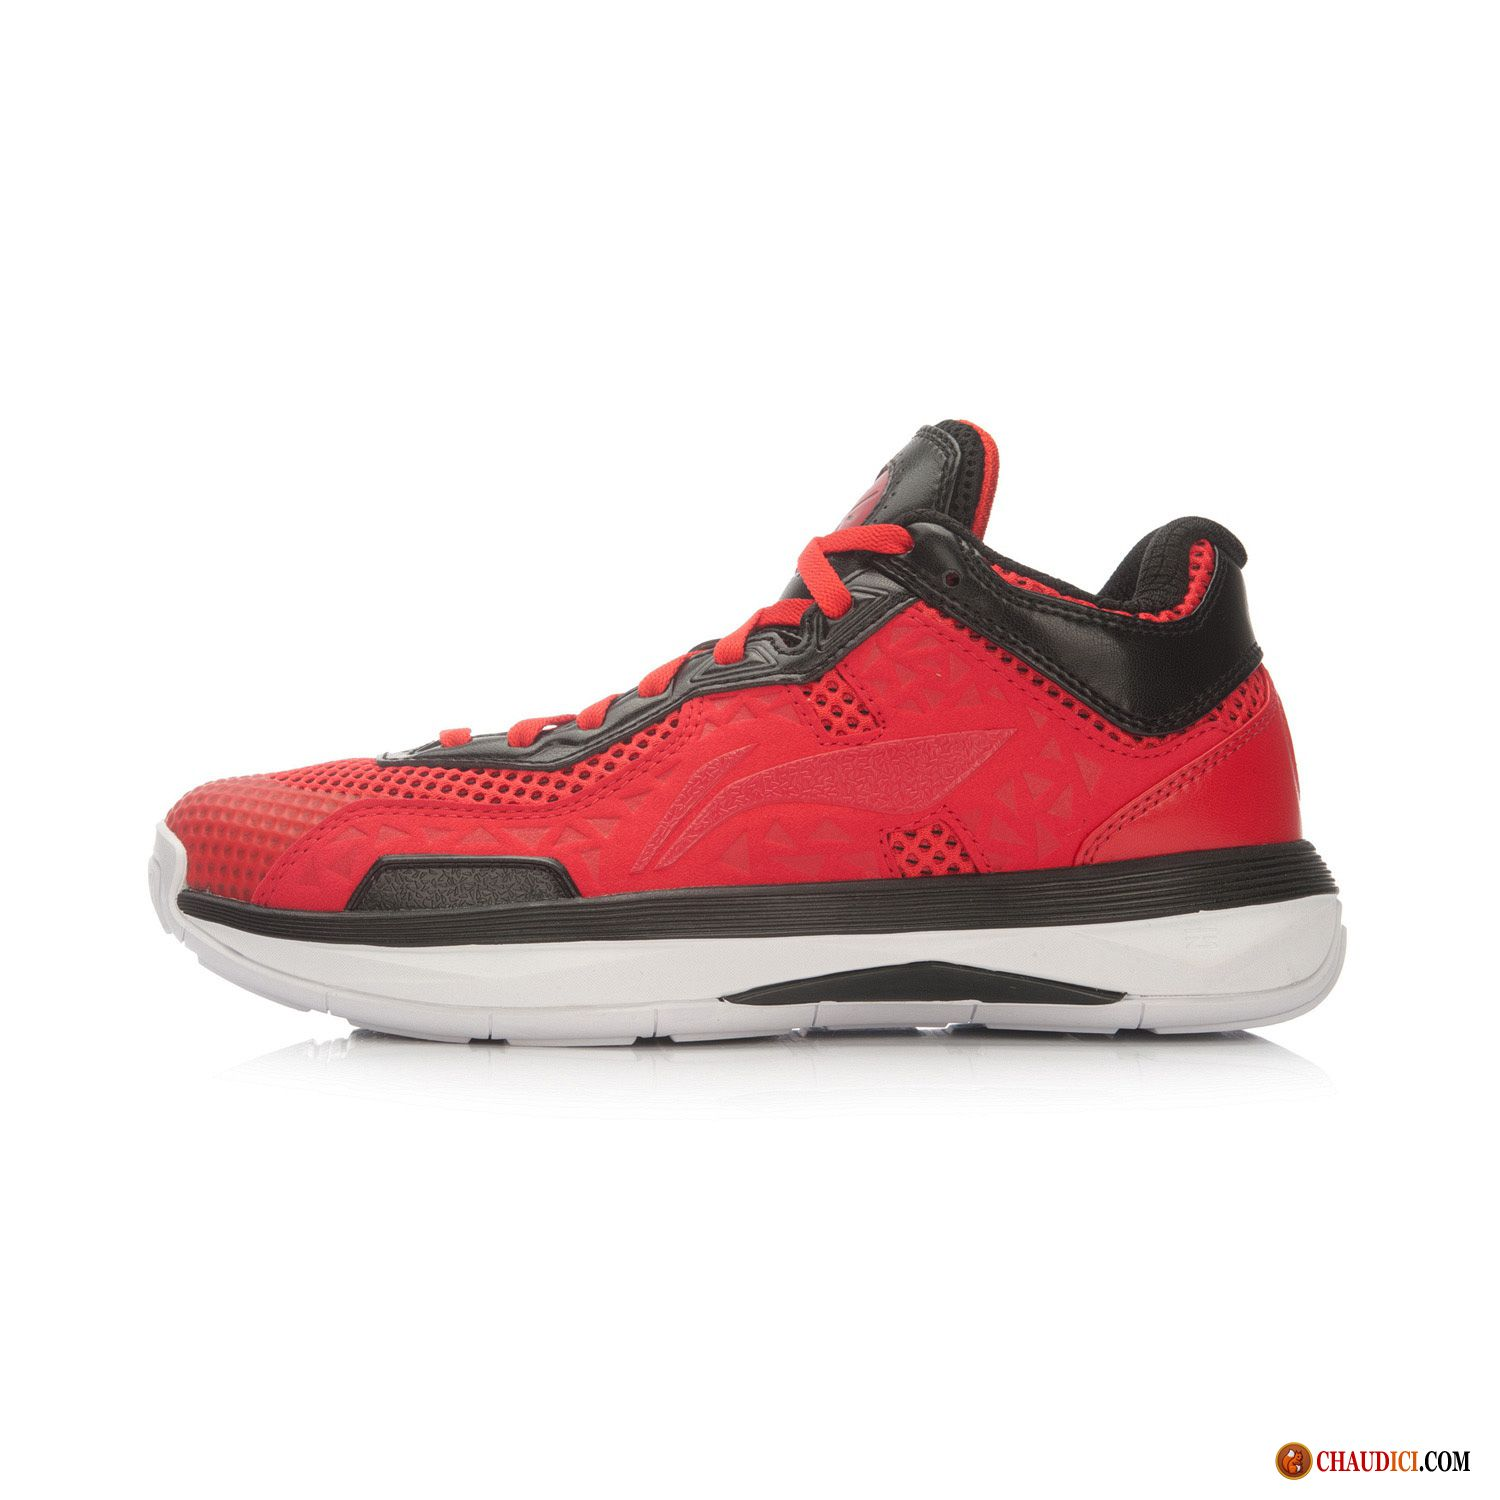 Soldes Chaussures Hommes Chaussures De Basket Métier Homme Match Chaussures Cushioning